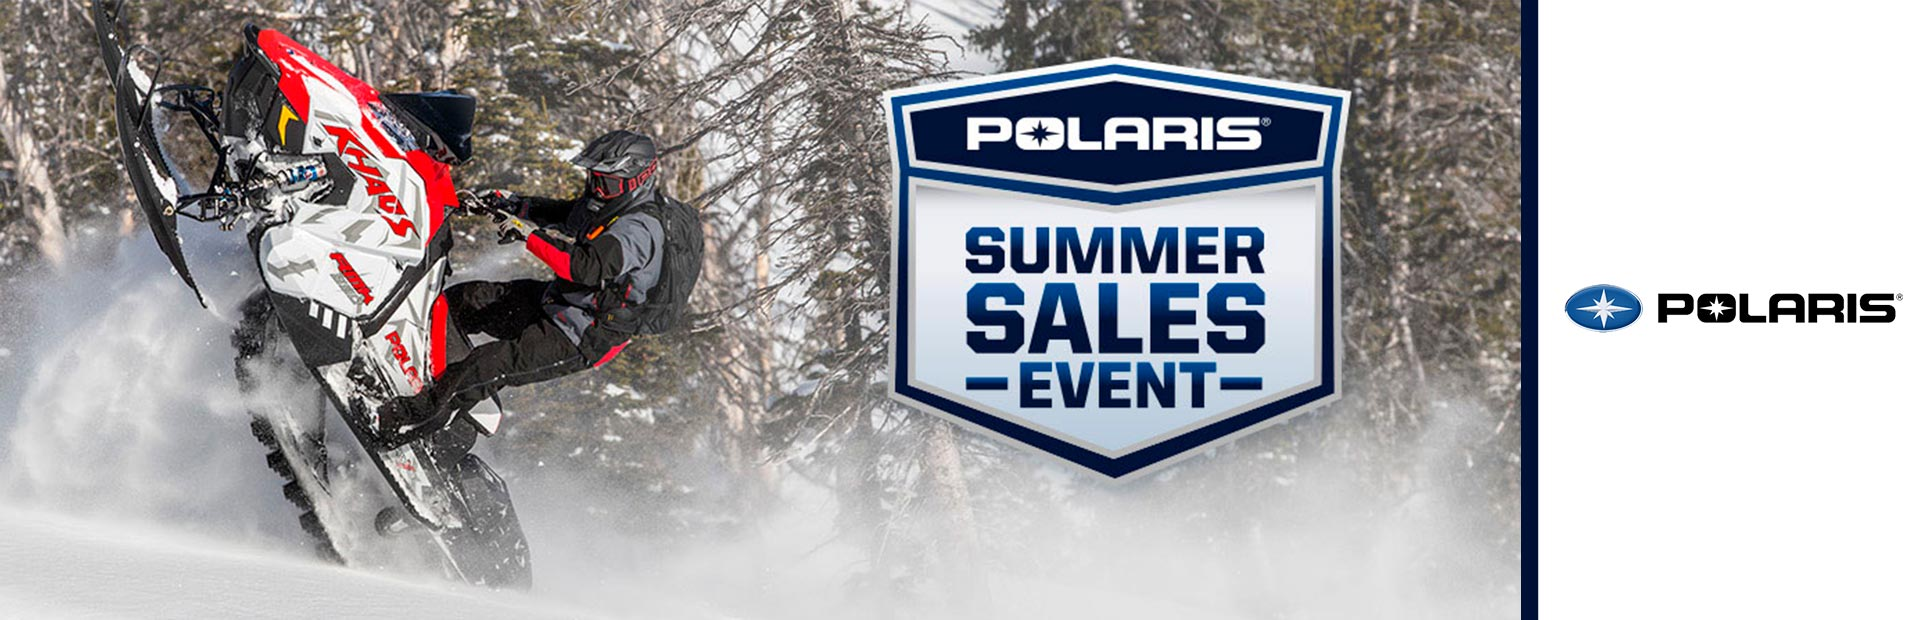 Polaris Industries: Summer Sales Event - Snow